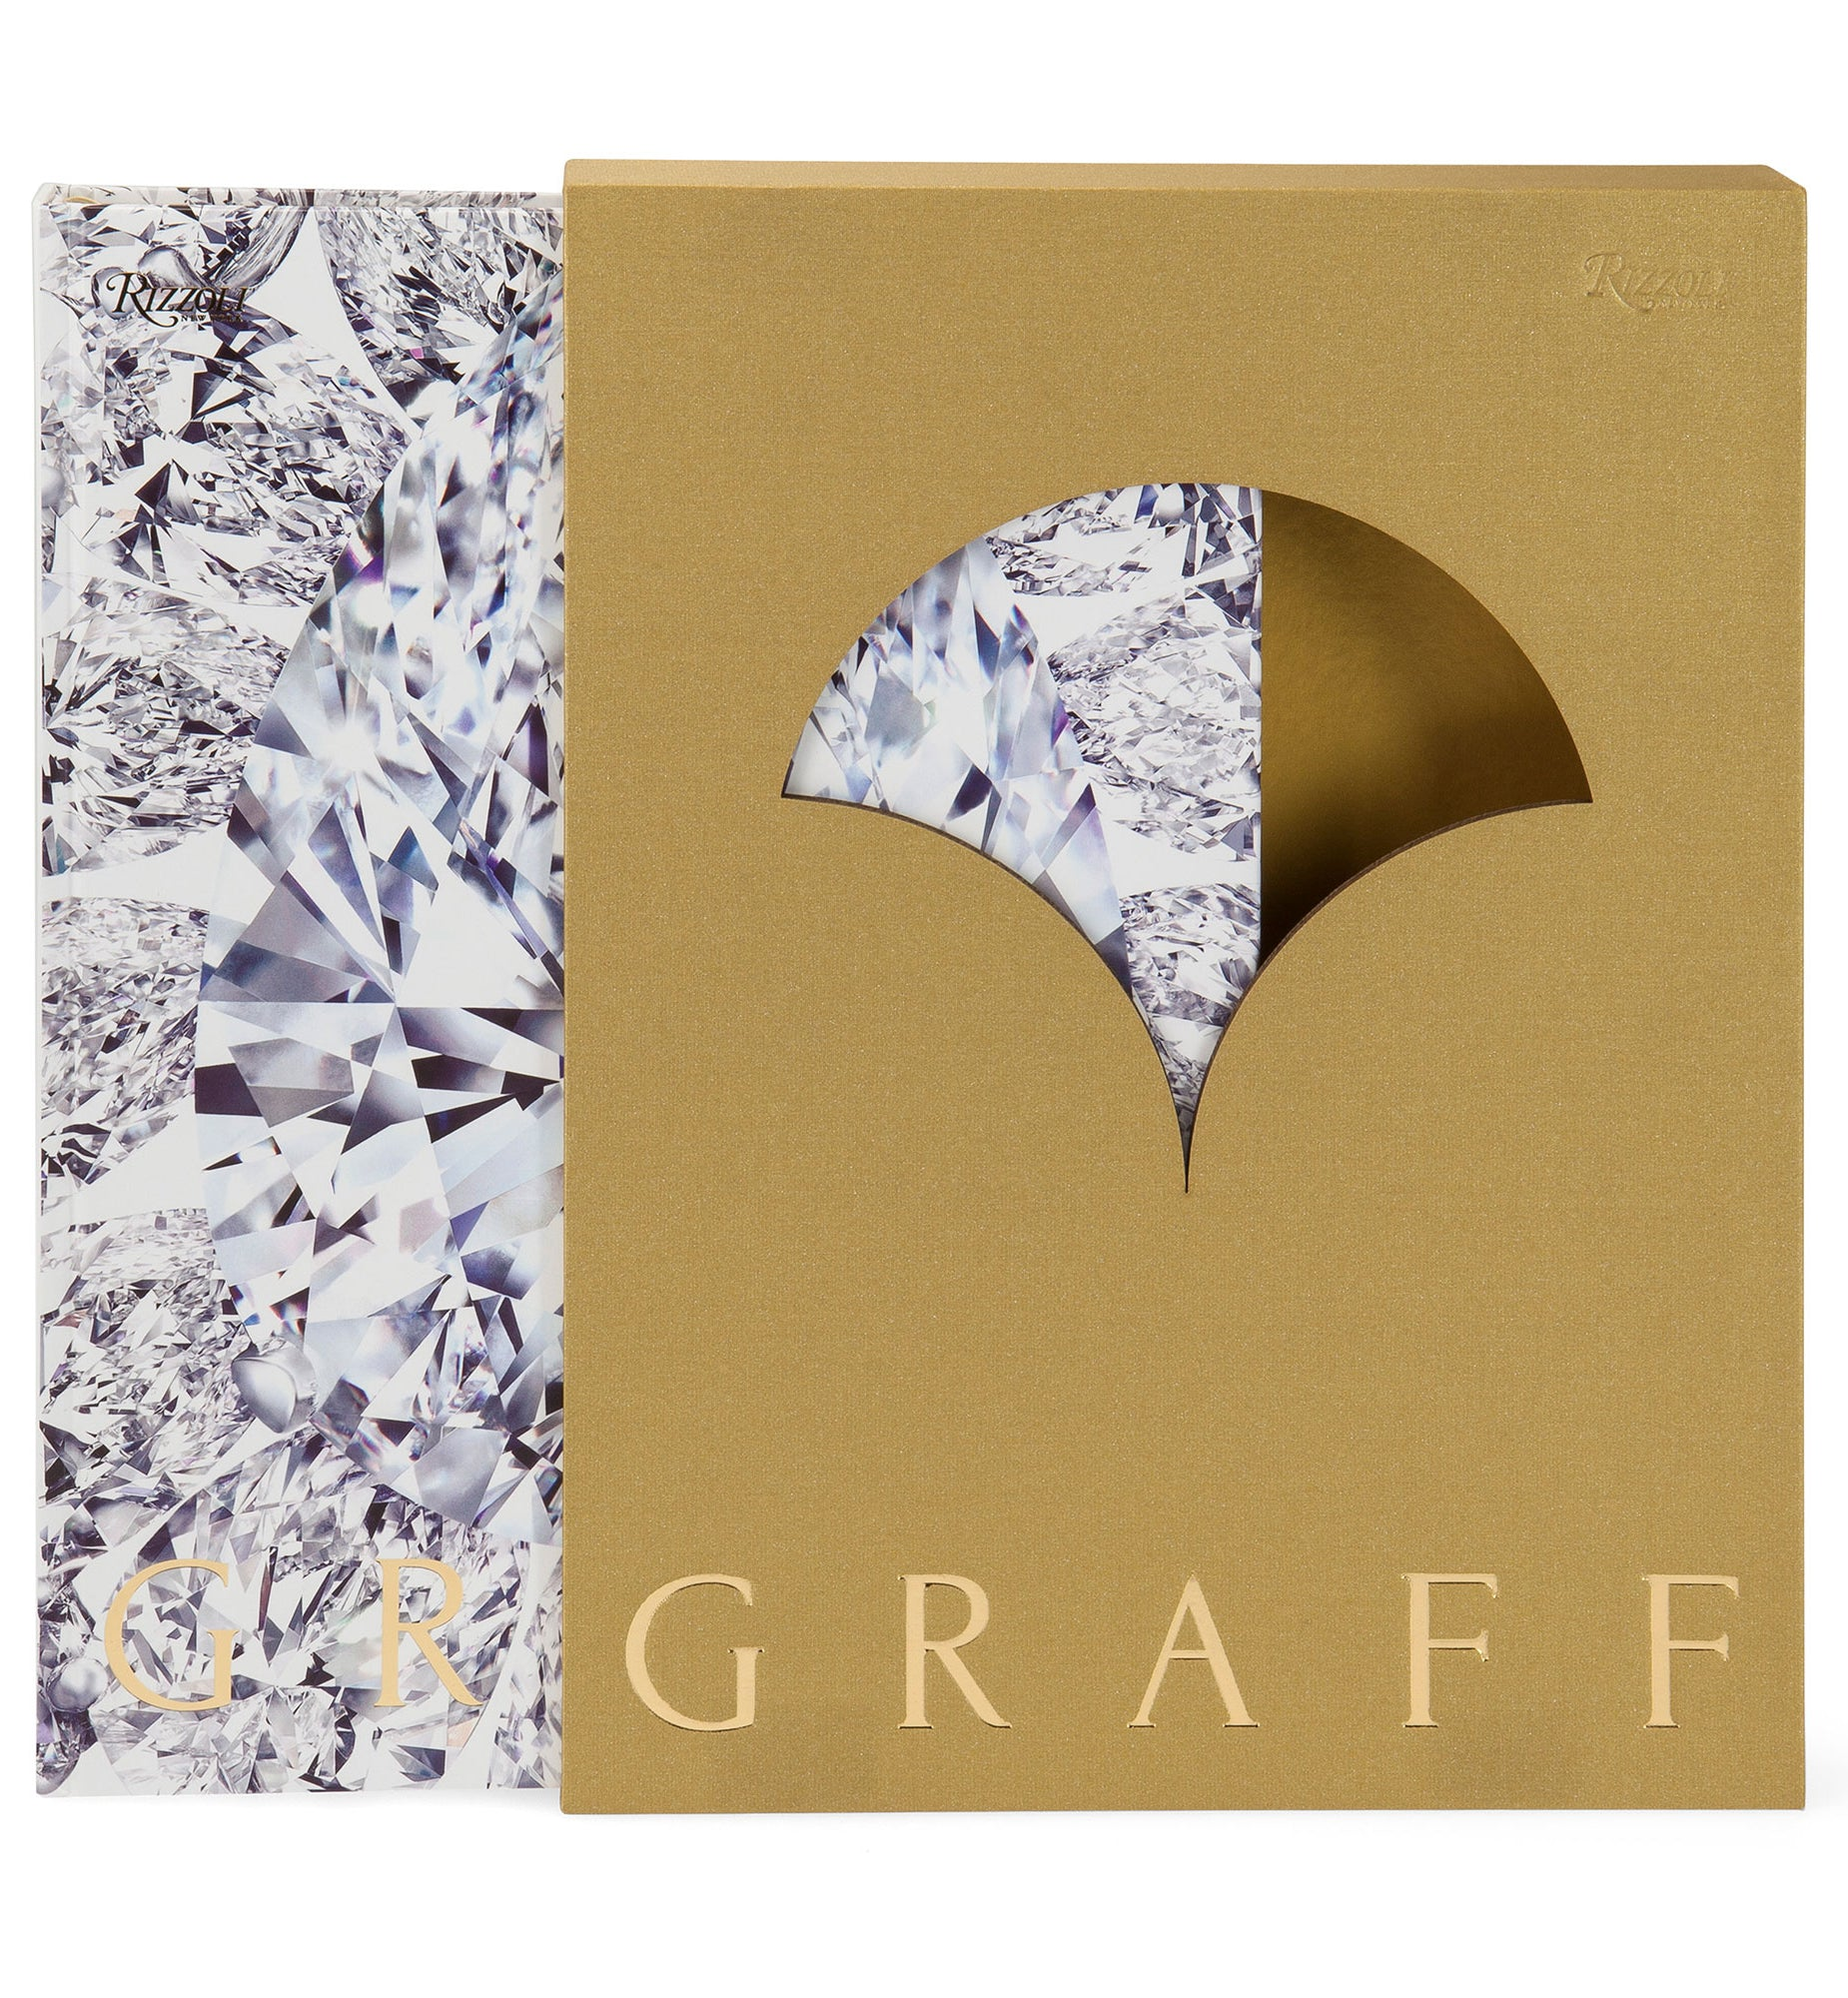 Buy GRAFF Diamond coffee table book from Delaire Graff Estate online store